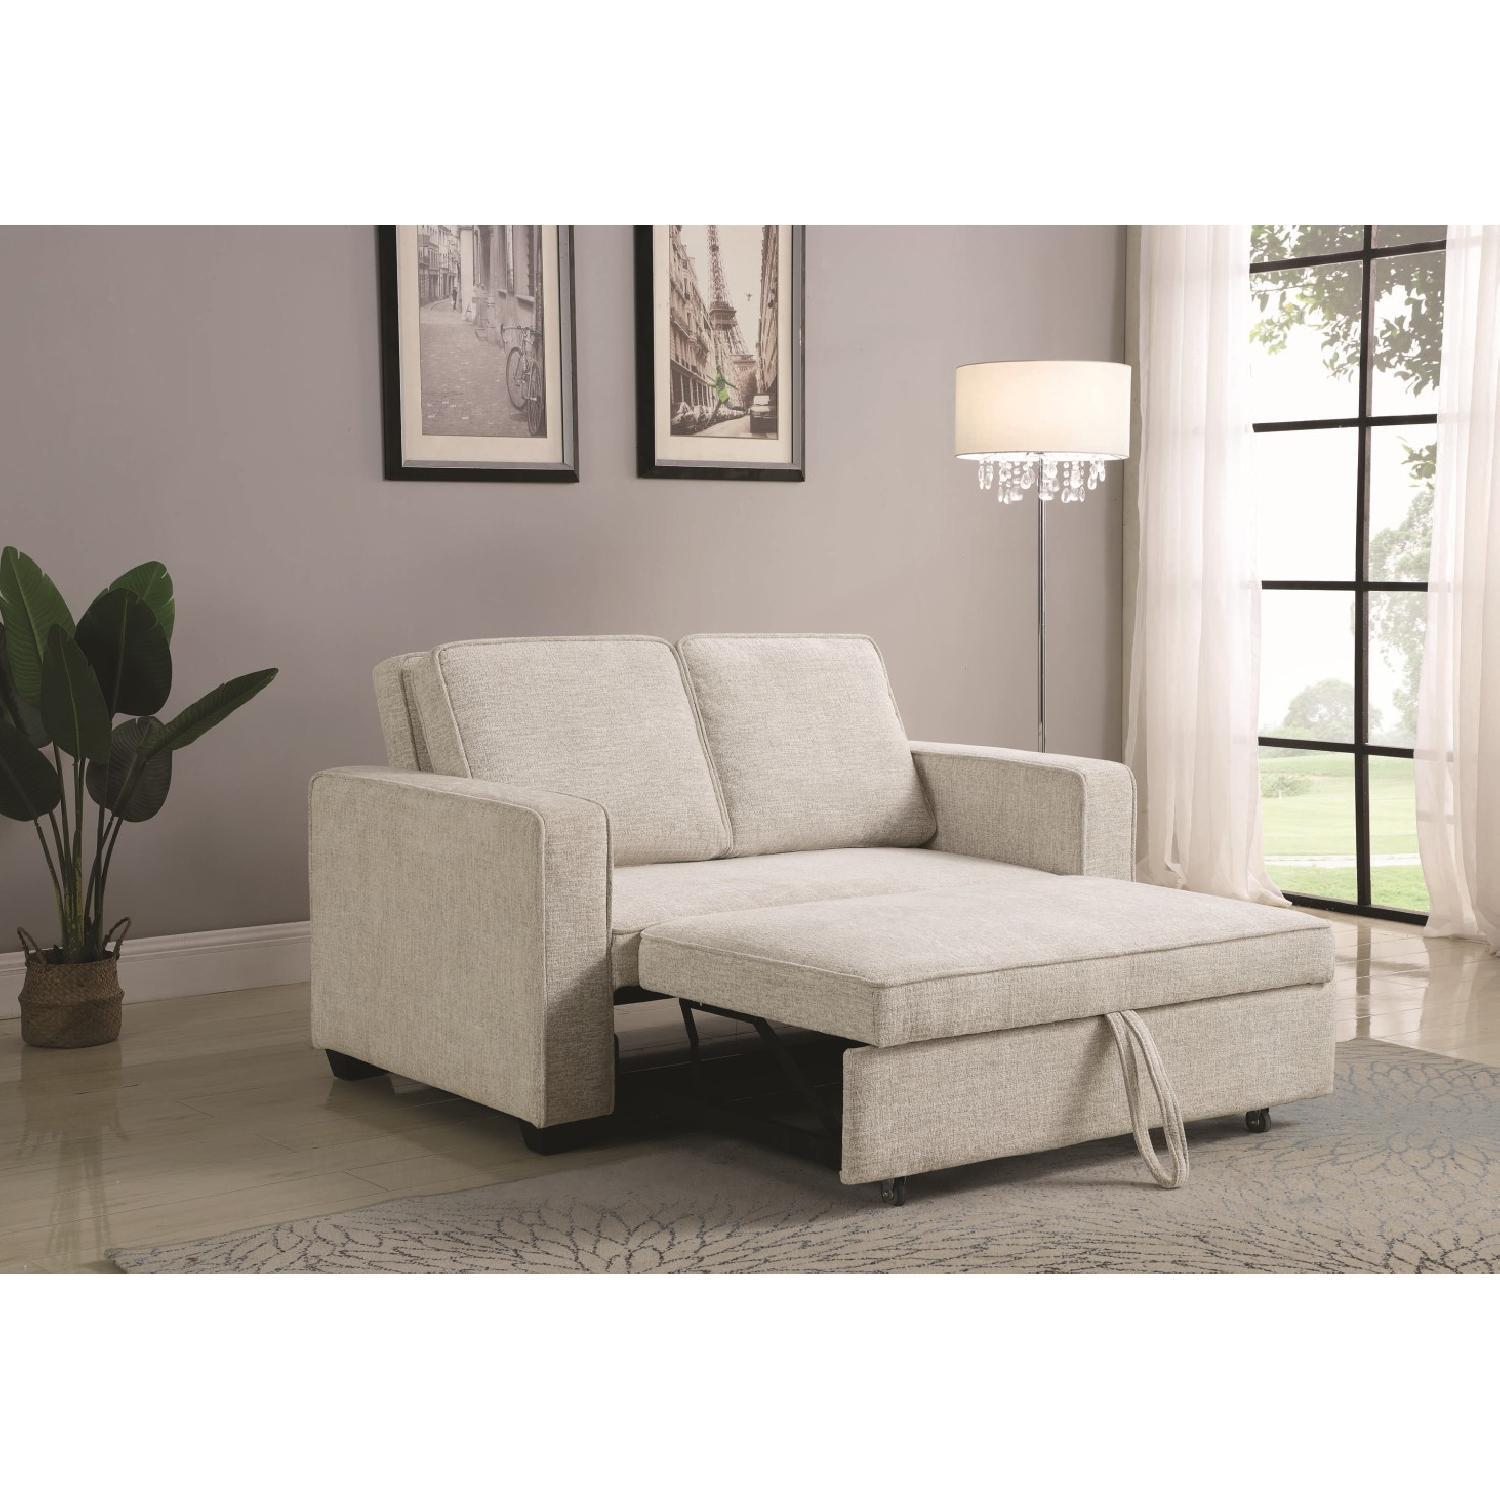 Compact Sofabed in Beige Chenille Fabric w/ Pull-Out Sleeper - image-6